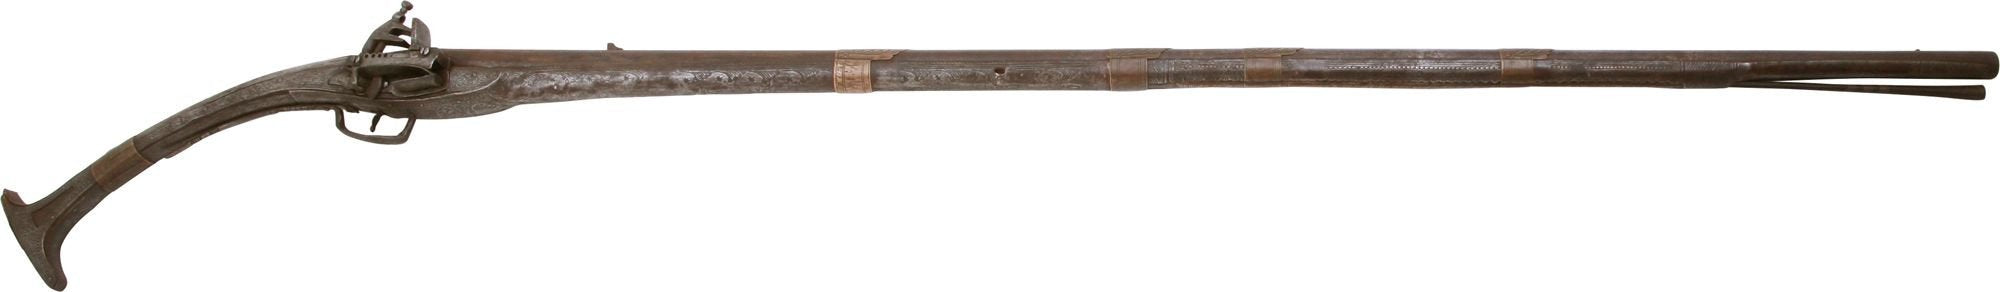 Ottoman Miquelet Musket - Product